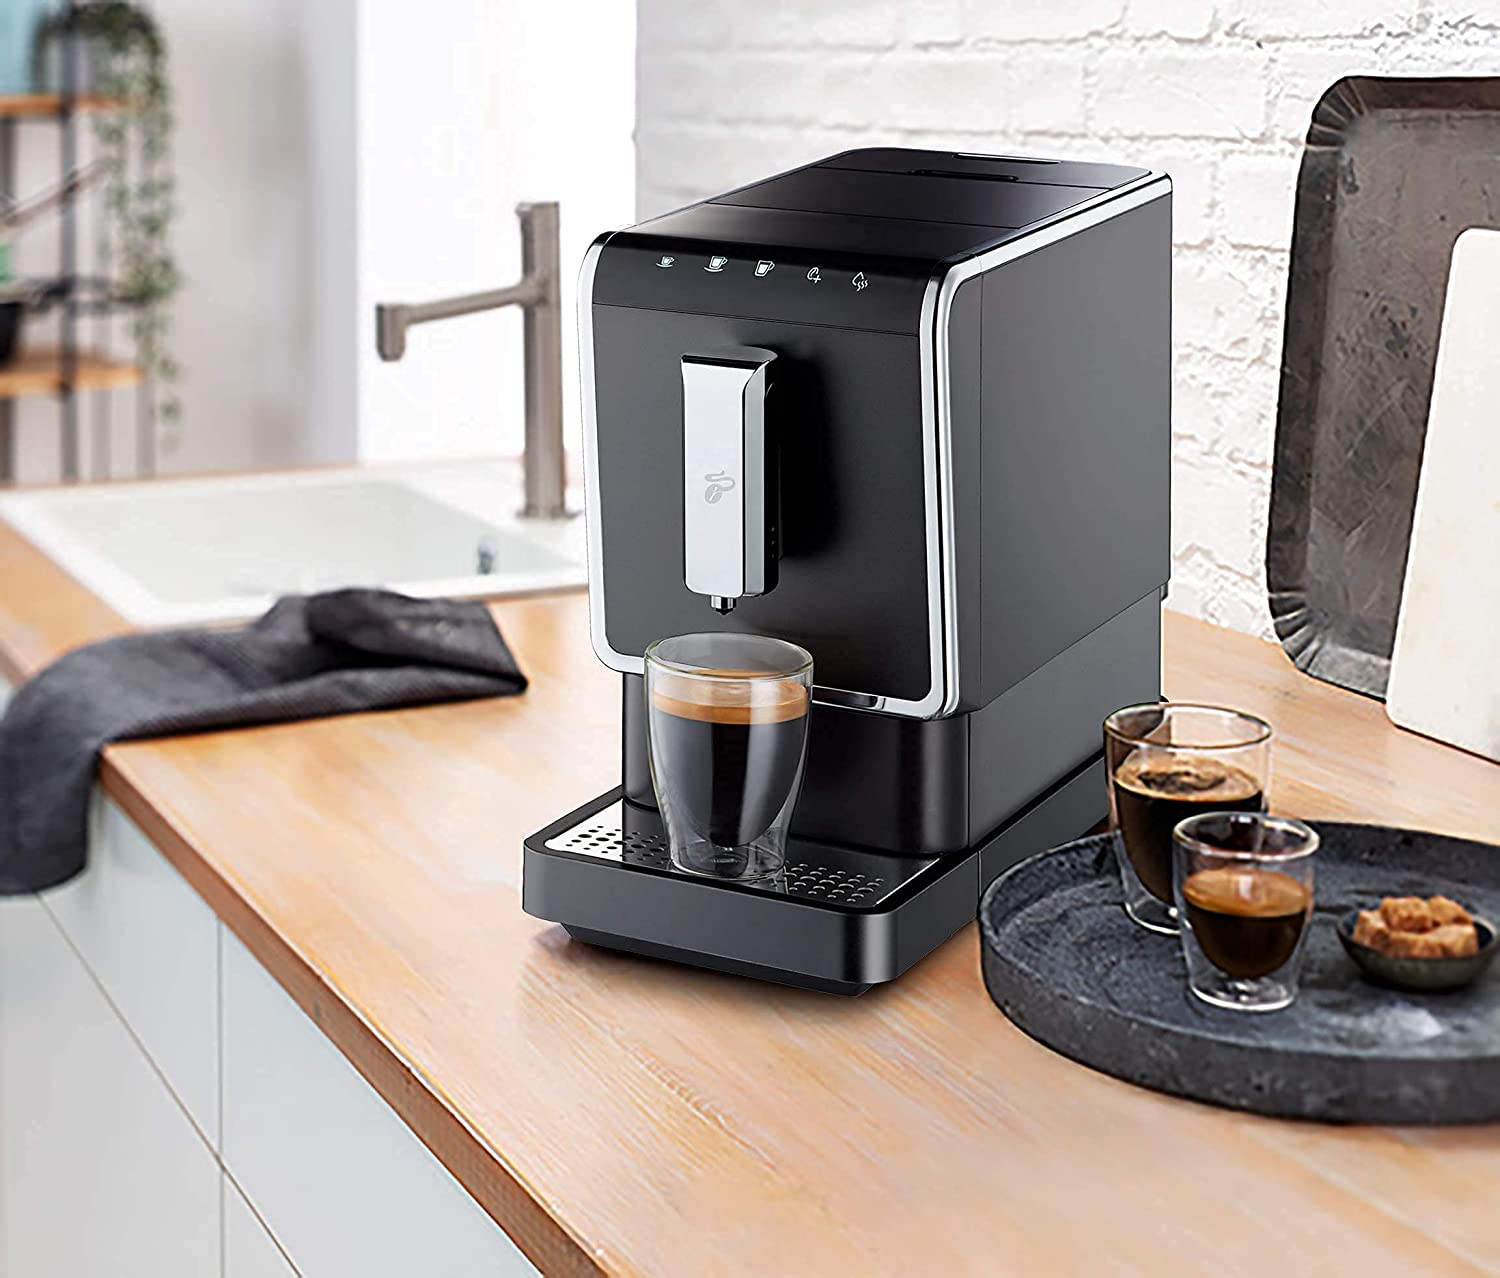 Buy Tchibo Fully Automatic Coffee Machine Bundle, with Two Whole Bean Coffee,  35 Ounce Bags - Revolutionary Single-Serve, Bean-To-Brew Coffee Maker - No  Pods, No Waste Online in Italy. B097S66K5C